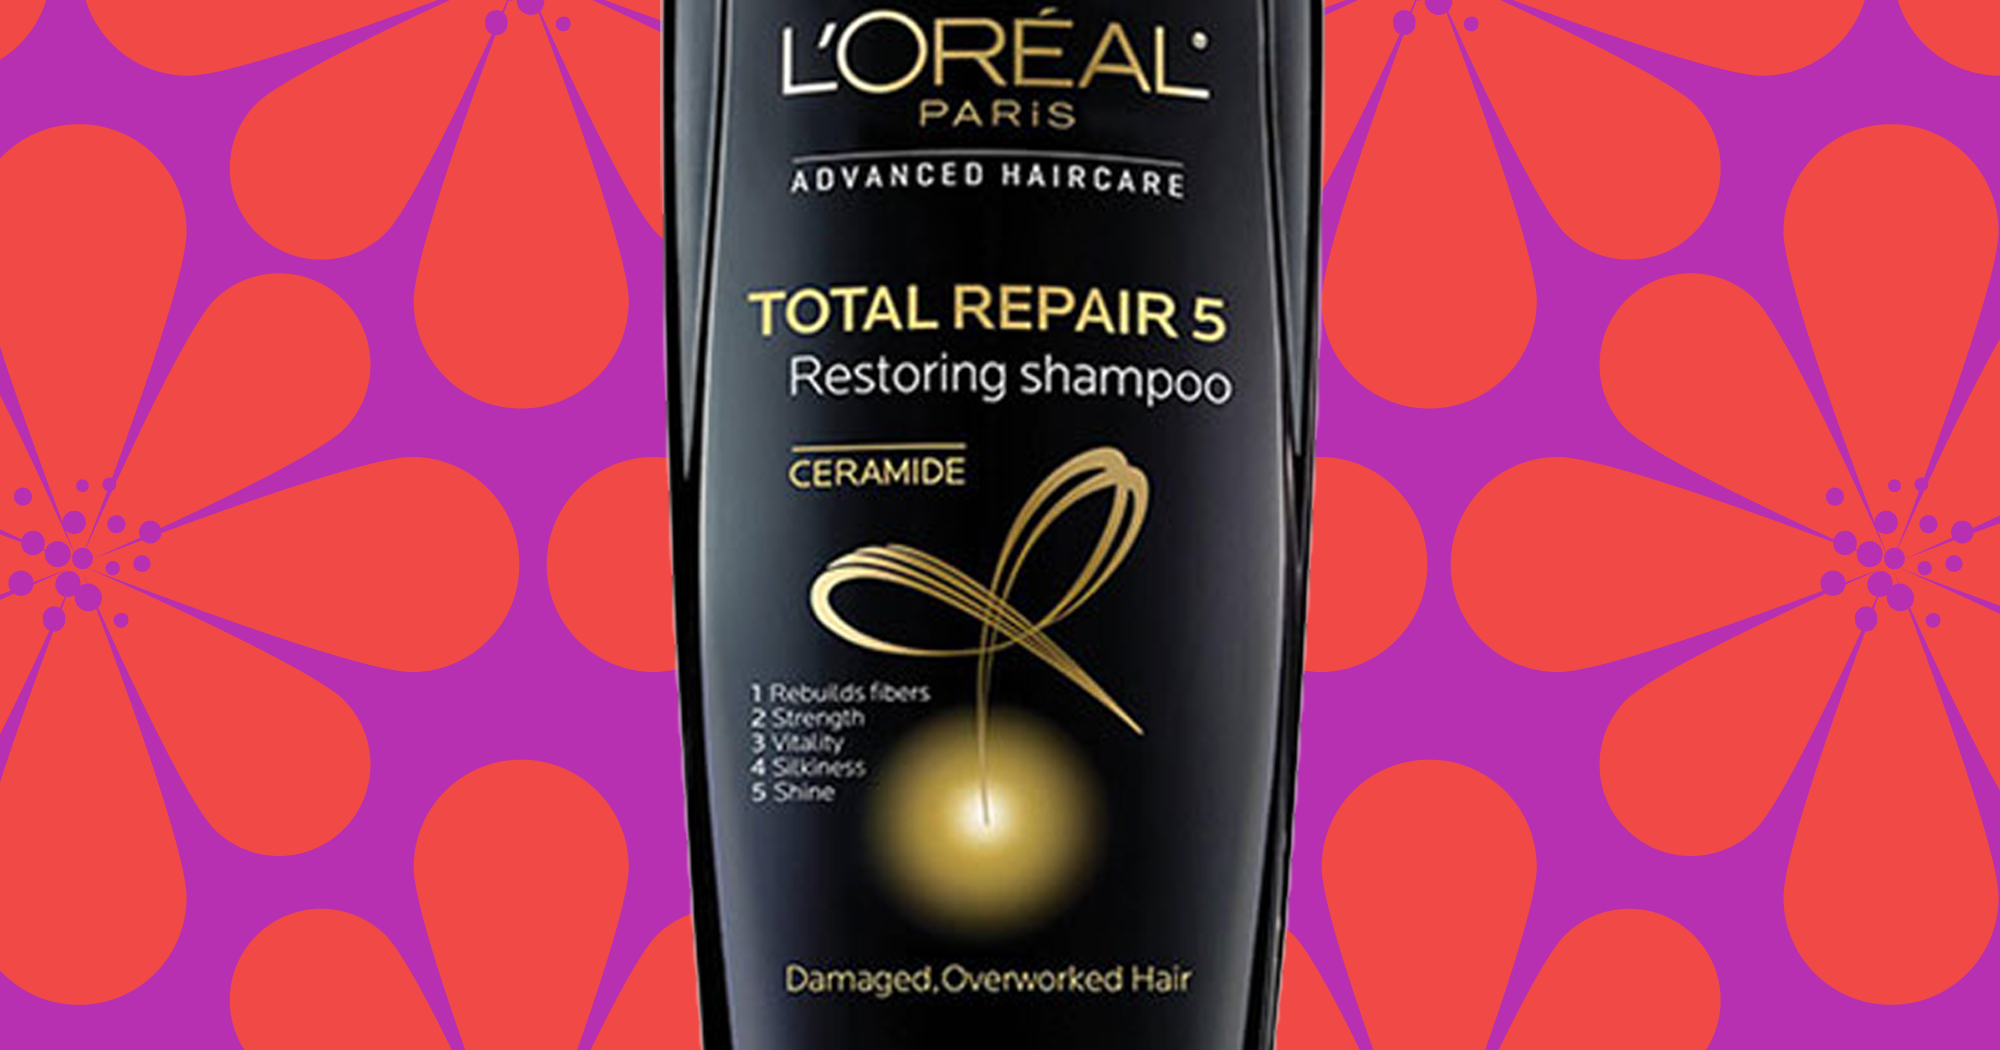 This $5 Shampoo Transformed My Hair In One Wash